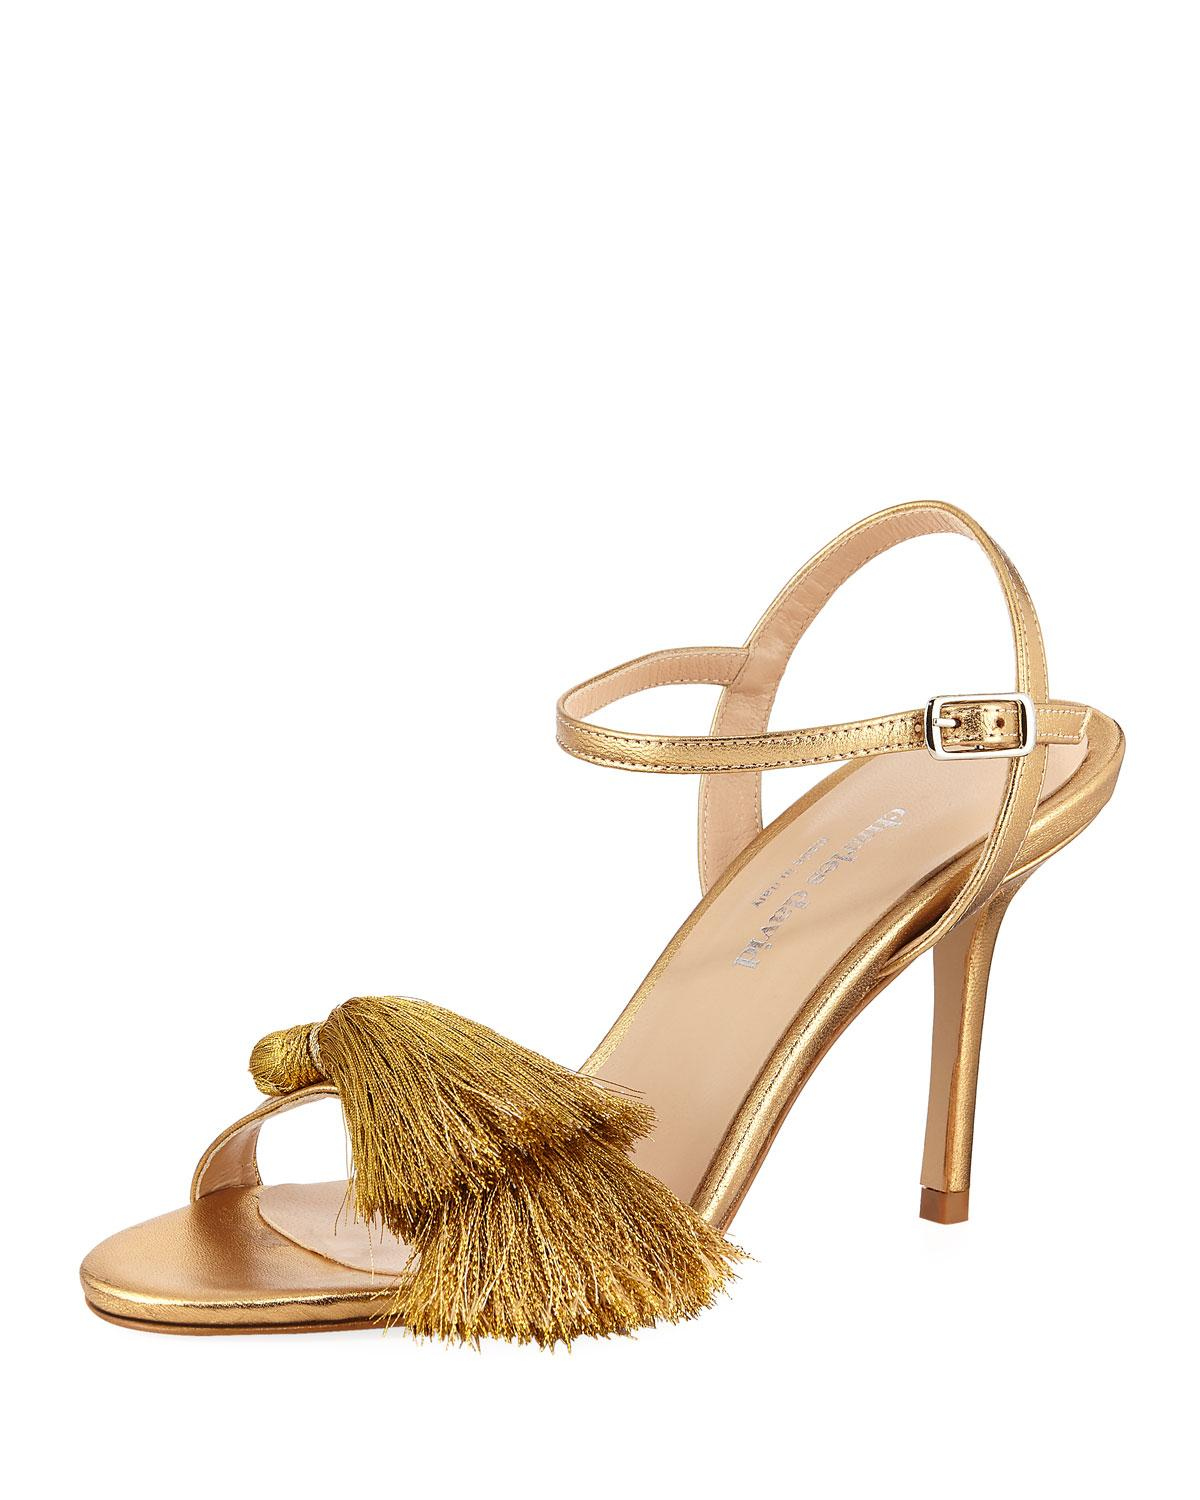 55b944bc1 Charles David Sassy Dress Sandal With Tassel In Gold Metallic